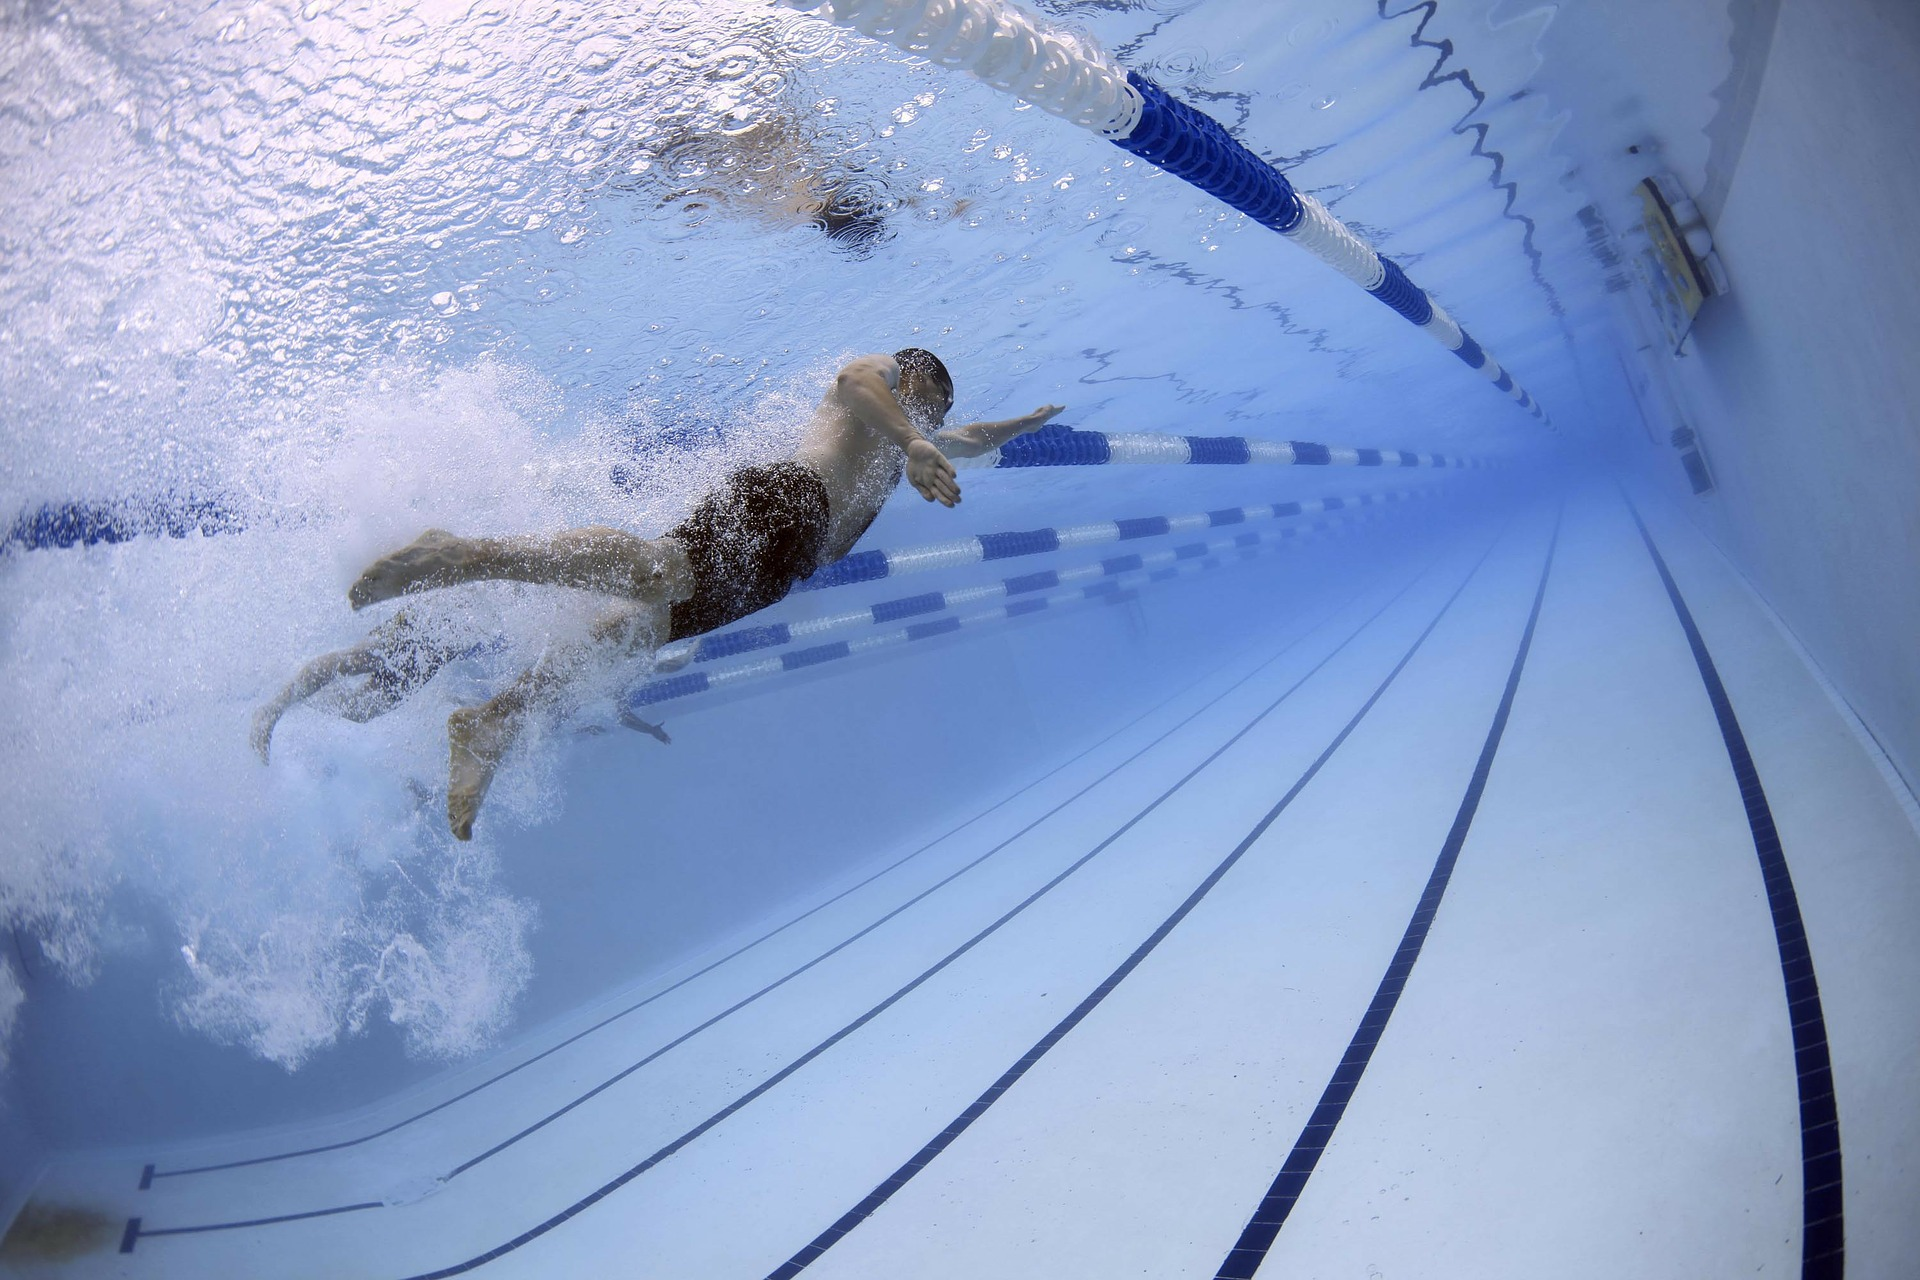 a person in a swimming pool, underwater, racing